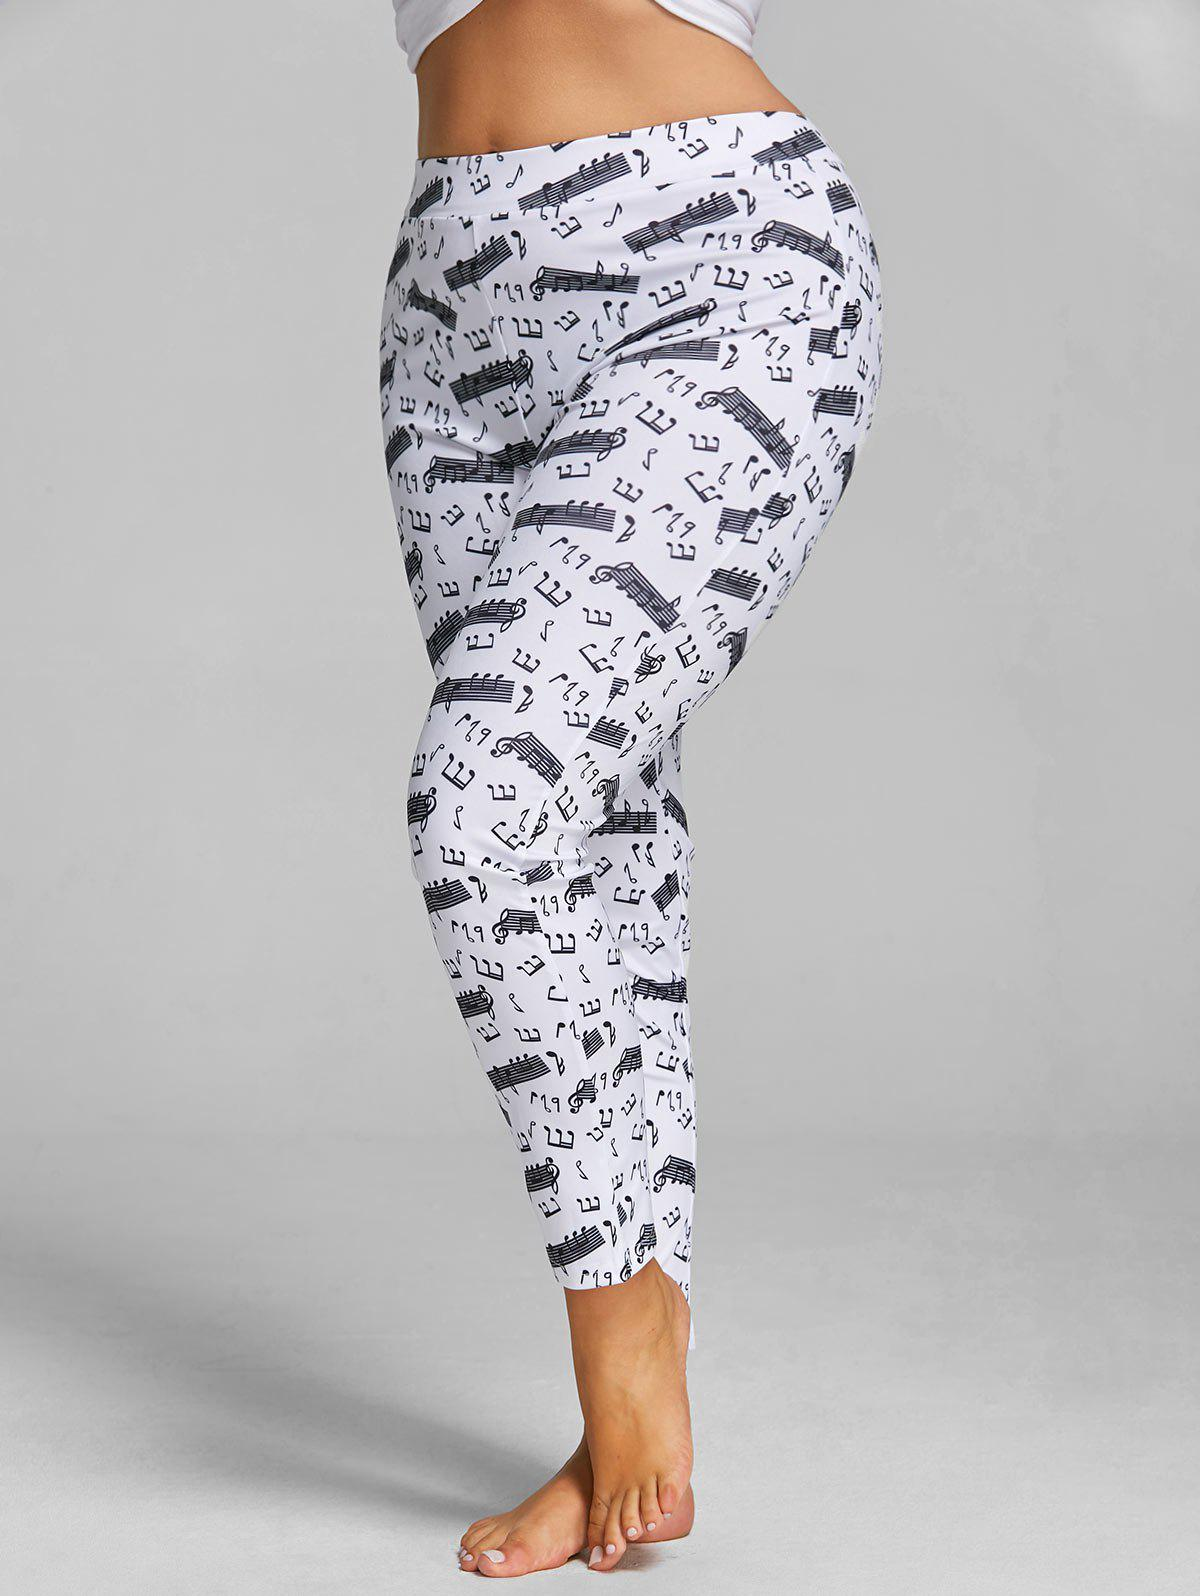 Plus Size Slim Music Notes Printed LeggingsWOMEN<br><br>Size: 5XL; Color: WHITE; Style: Fashion; Length: Normal; Material: Polyester; Fit Type: Skinny; Waist Type: High; Closure Type: Elastic Waist; Pattern Type: Print; Pant Style: Pencil Pants; Elasticity: Elastic; Weight: 0.3500kg; Package Contents: 1 x Leggings;